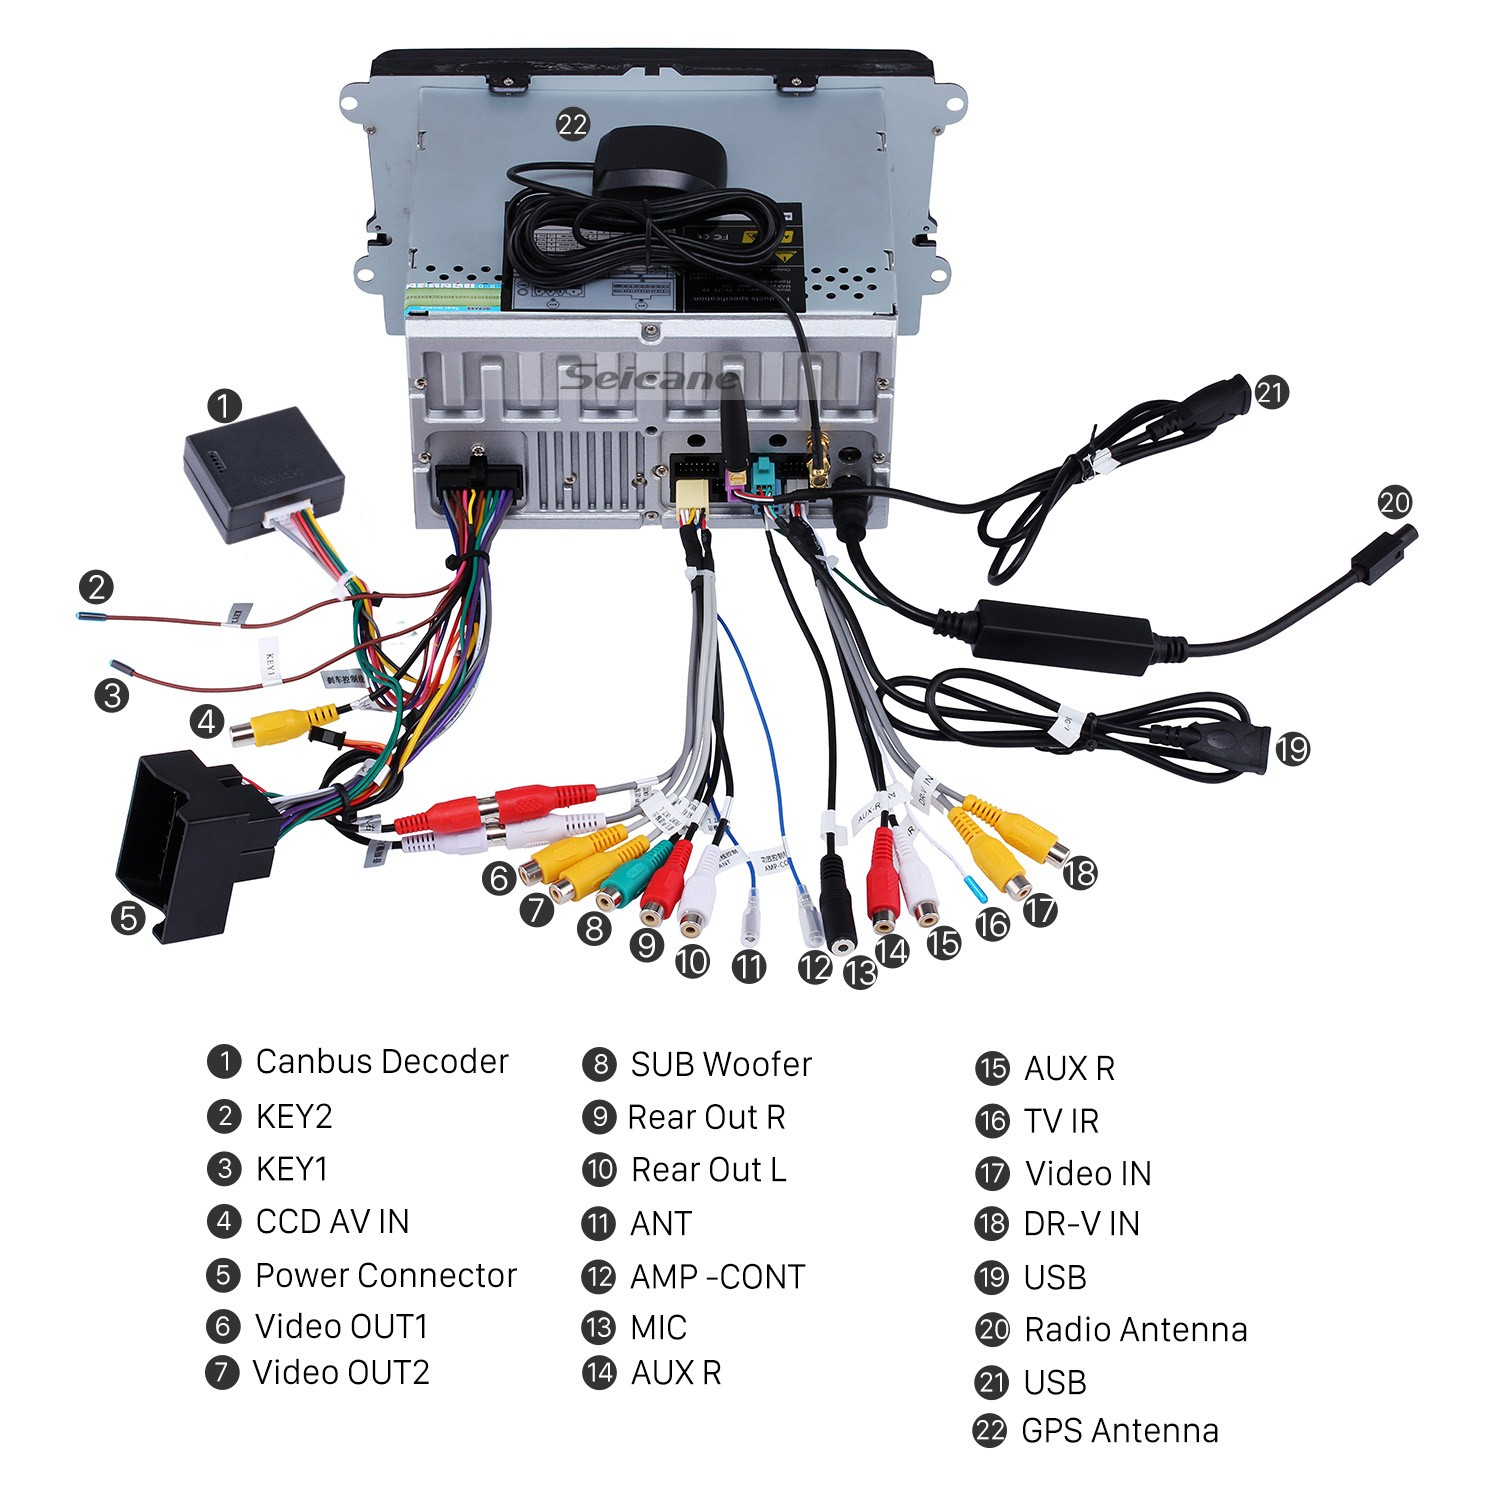 2005 2006 2007 2008 2011 Seat Leon Car Radio Installation Dvd Lancer 18 Wire Stereo Wiring Diagram For The Further Confirmation Of Right Connecting All Connectors And Cables You Can